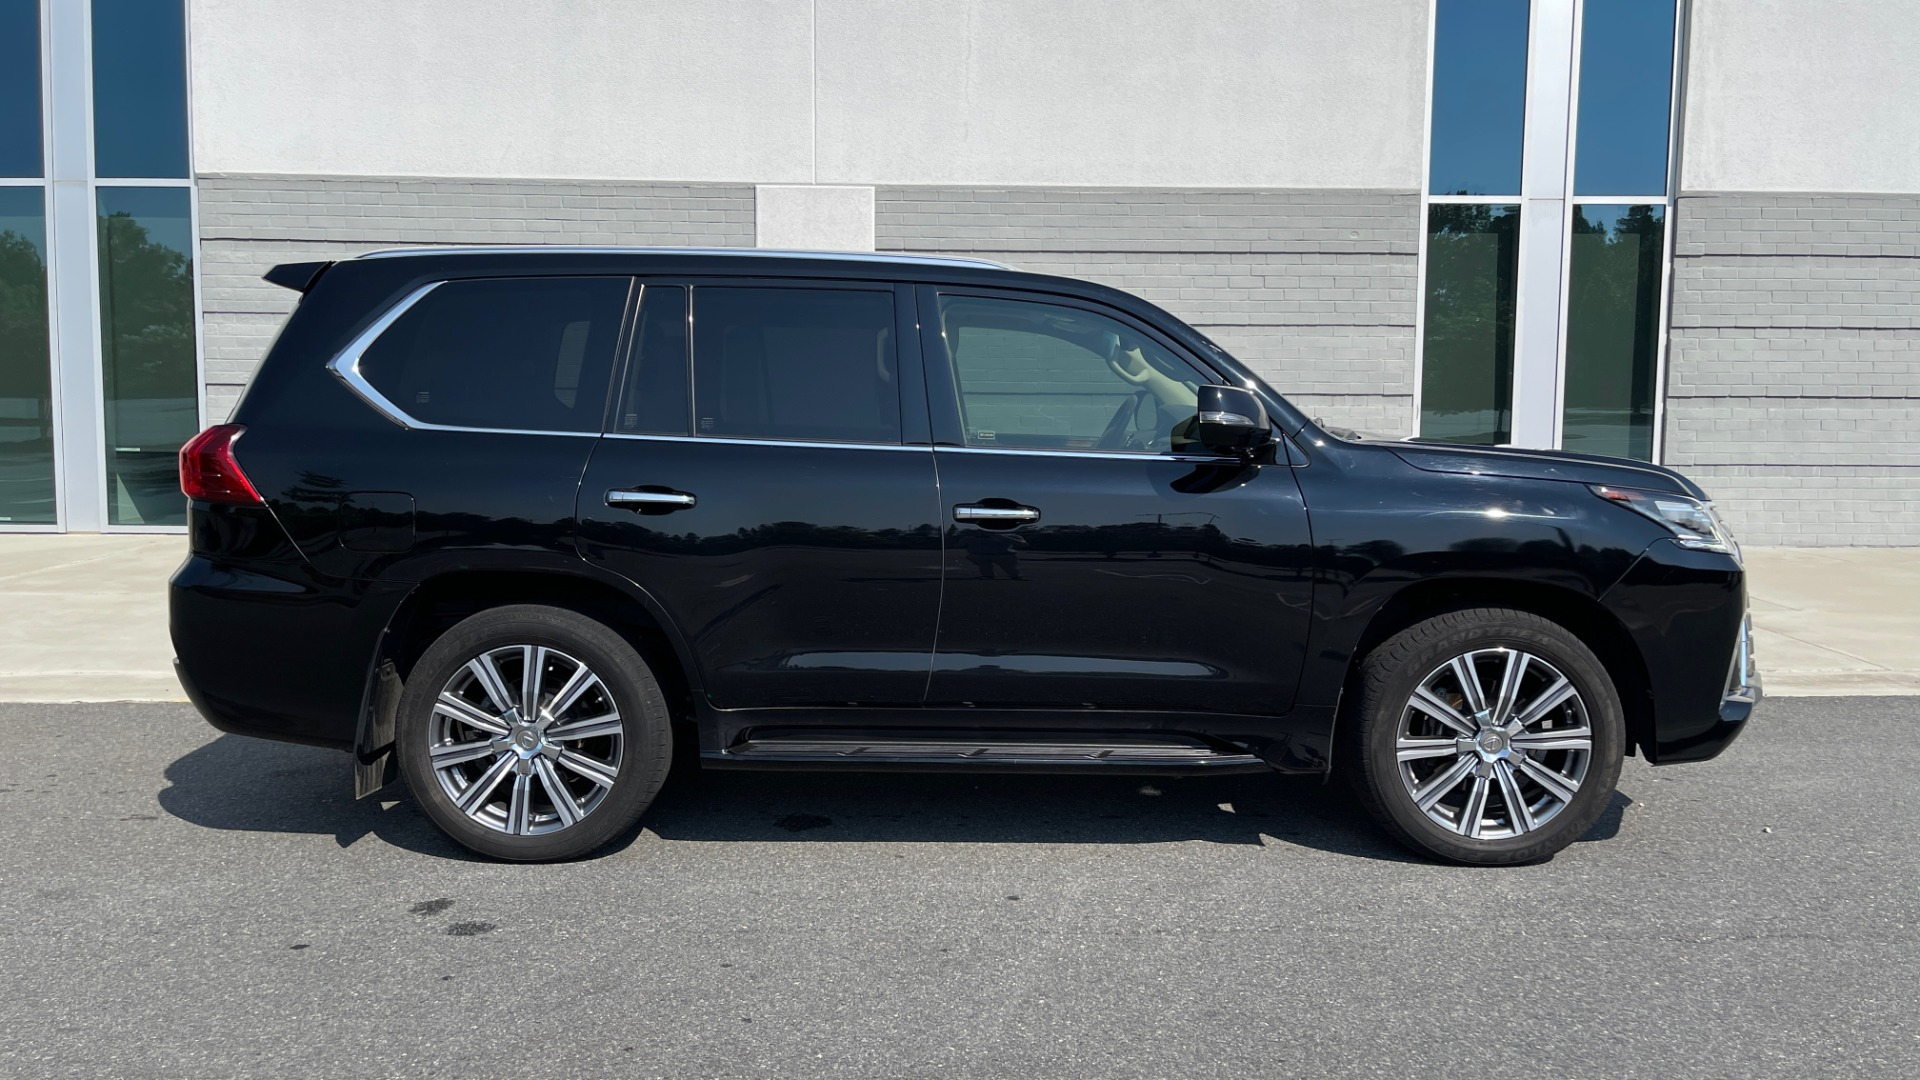 Used 2017 Lexus LX 570 LUXURY / 5.7L V8 / NAV / SUNROOF / 3-ROW / DVD / REARVIEW for sale $63,995 at Formula Imports in Charlotte NC 28227 6